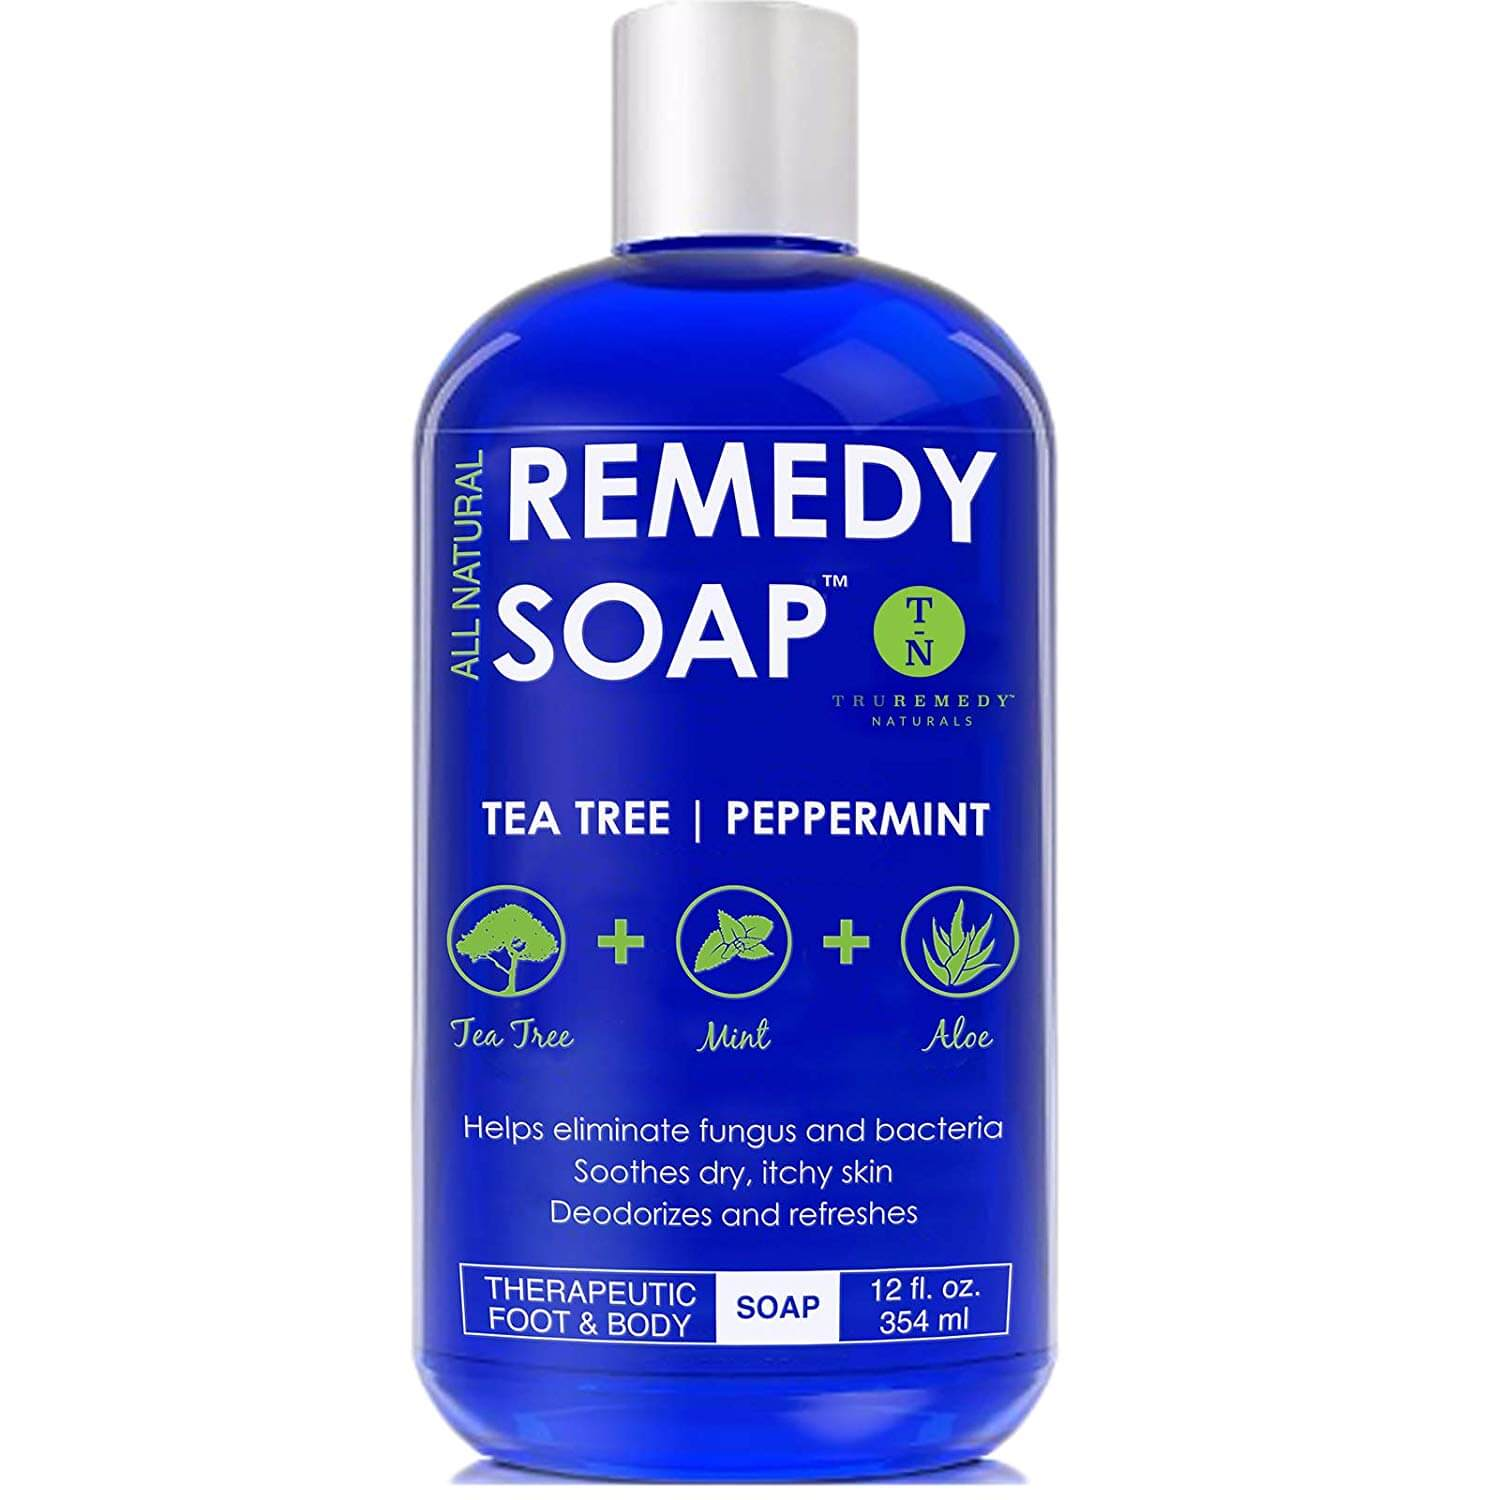 This Remedy Antifungal Soap is packed with skin-nourishing ingredients.